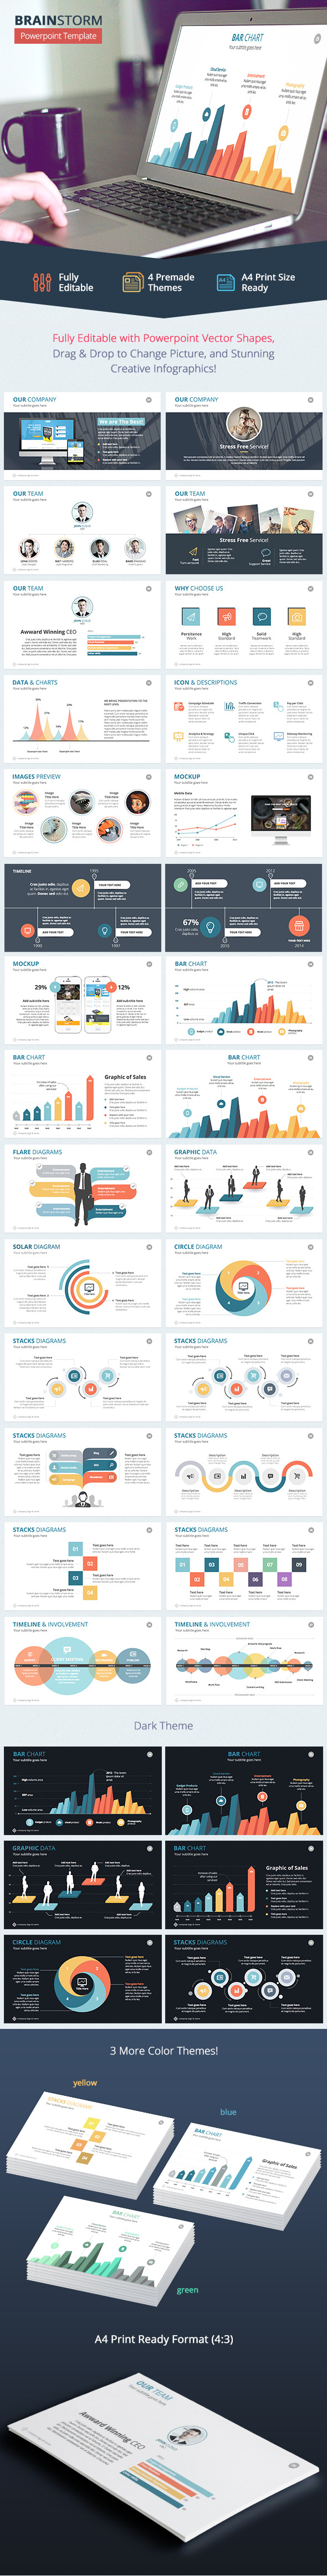 Brainstorm Powerpoint Template